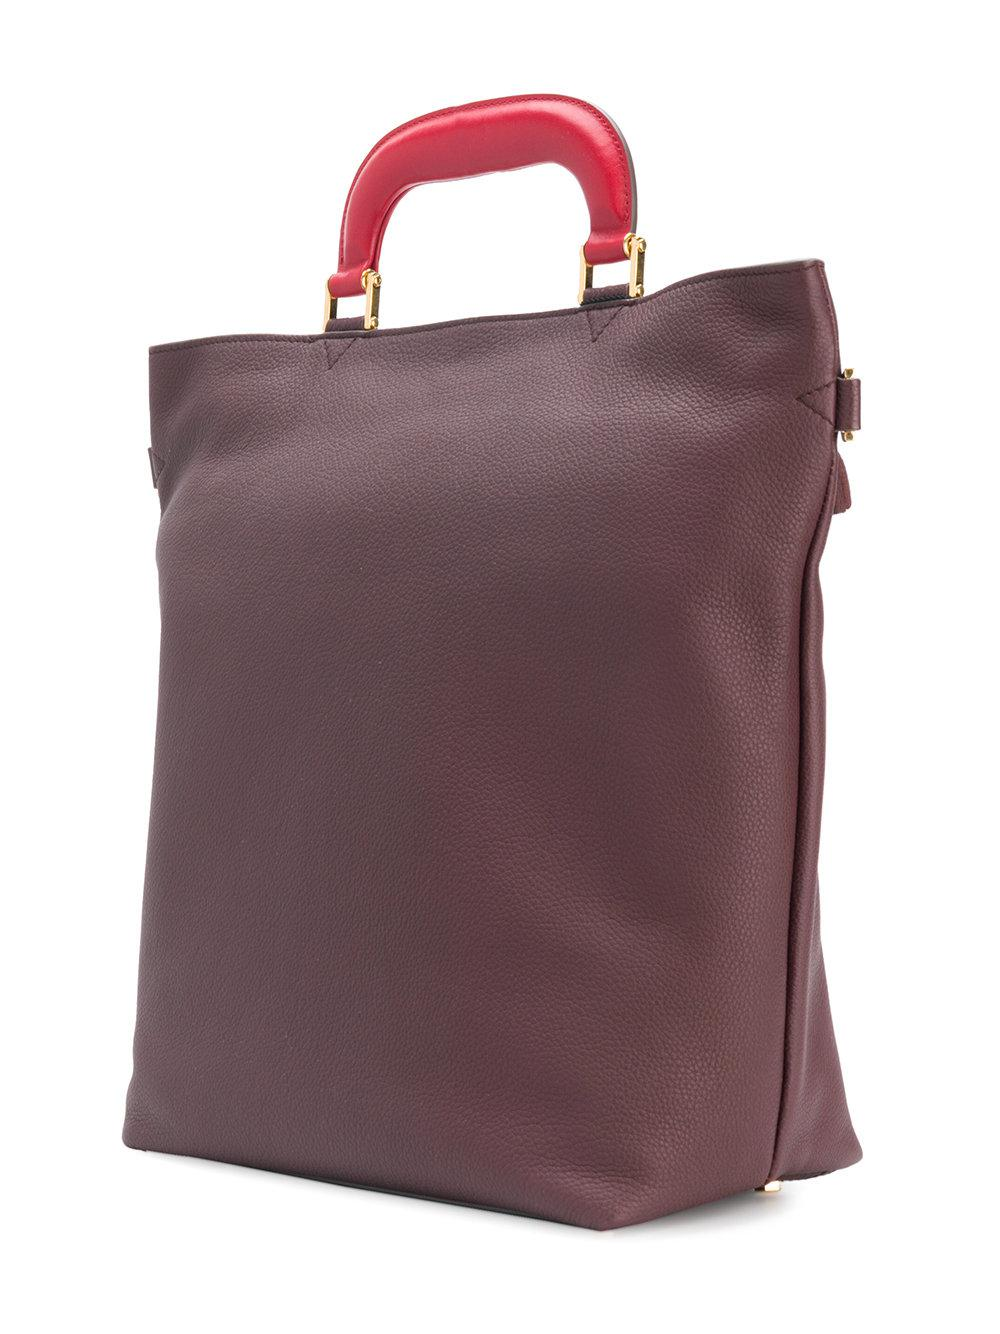 Anya Hindmarch Leather Circle Small Orsett Tote Bag in Pink & Purple (Purple)